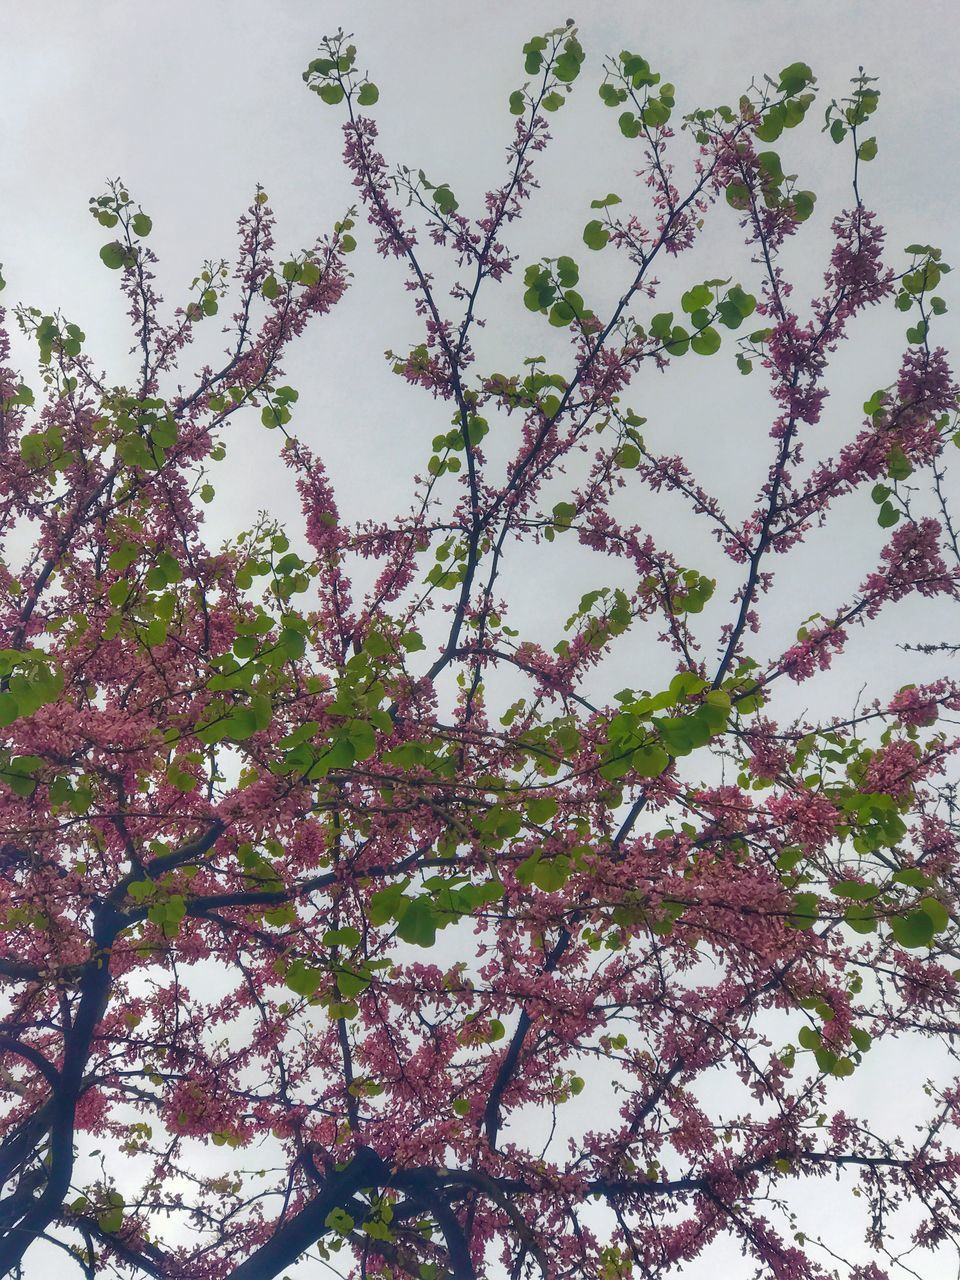 tree, growth, beauty in nature, no people, nature, branch, flower, low angle view, blossom, springtime, freshness, day, outdoors, fragility, backgrounds, full frame, scenics, sky, close-up